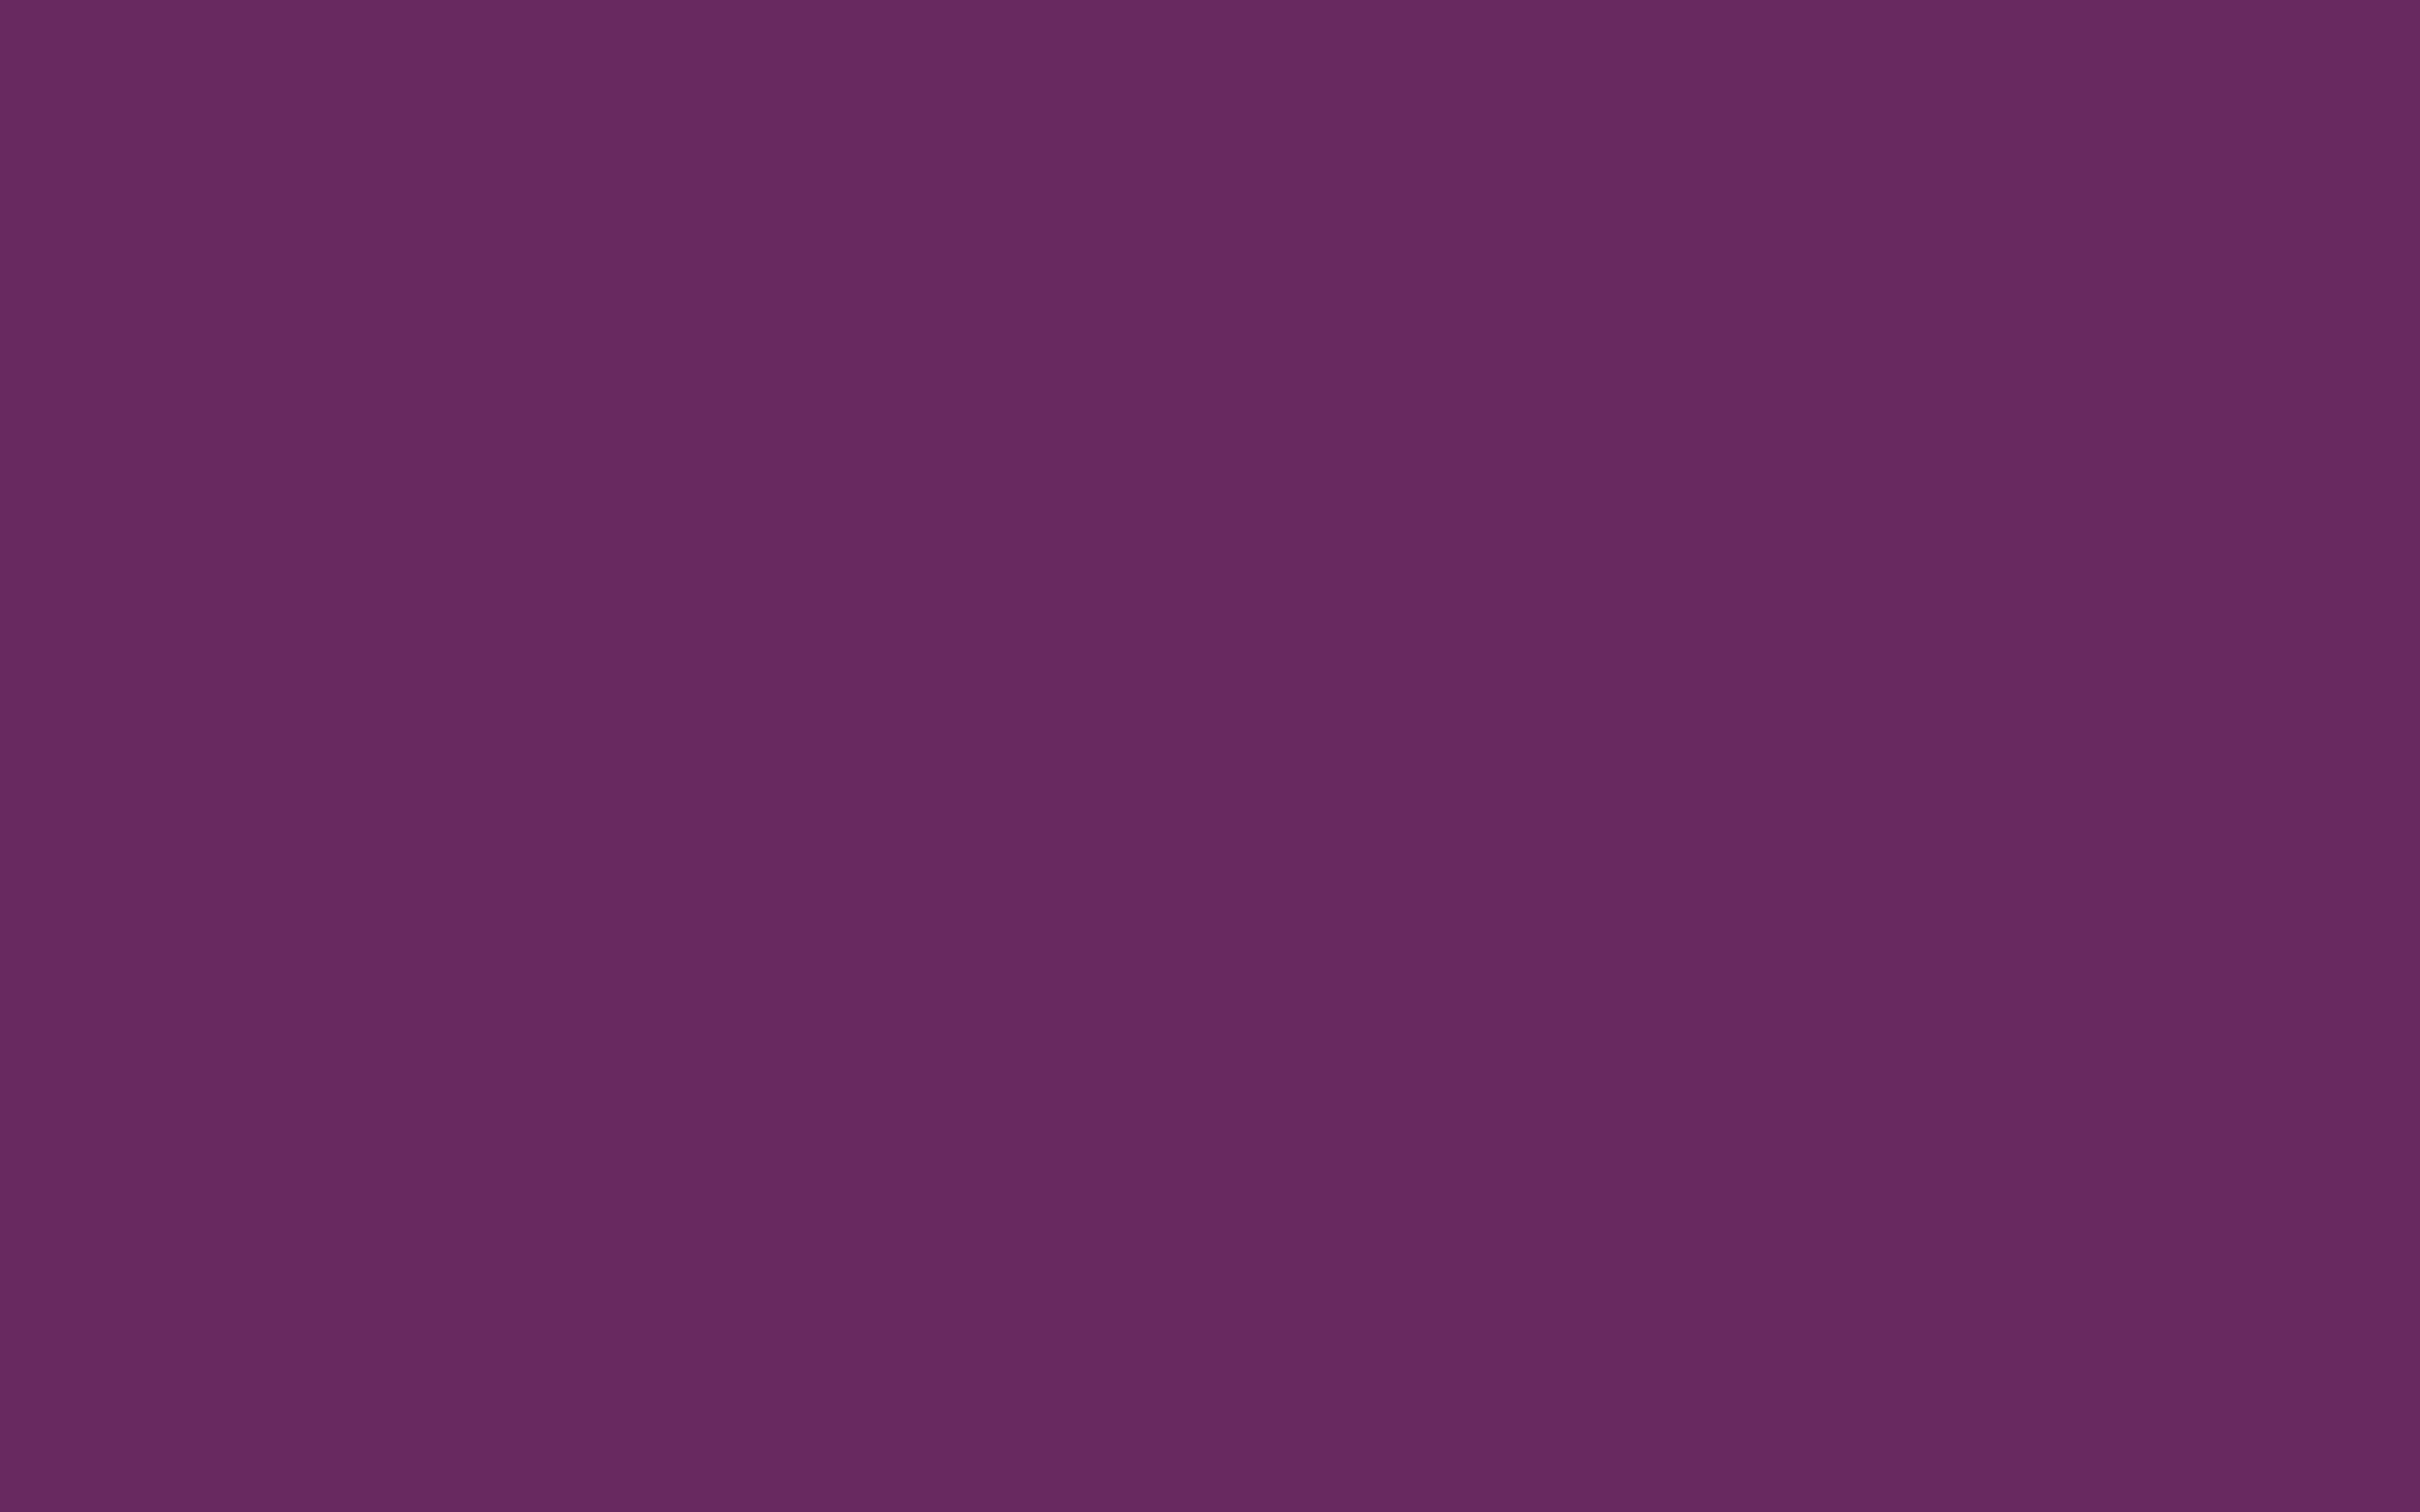 2560x1600 Palatinate Purple Solid Color Background